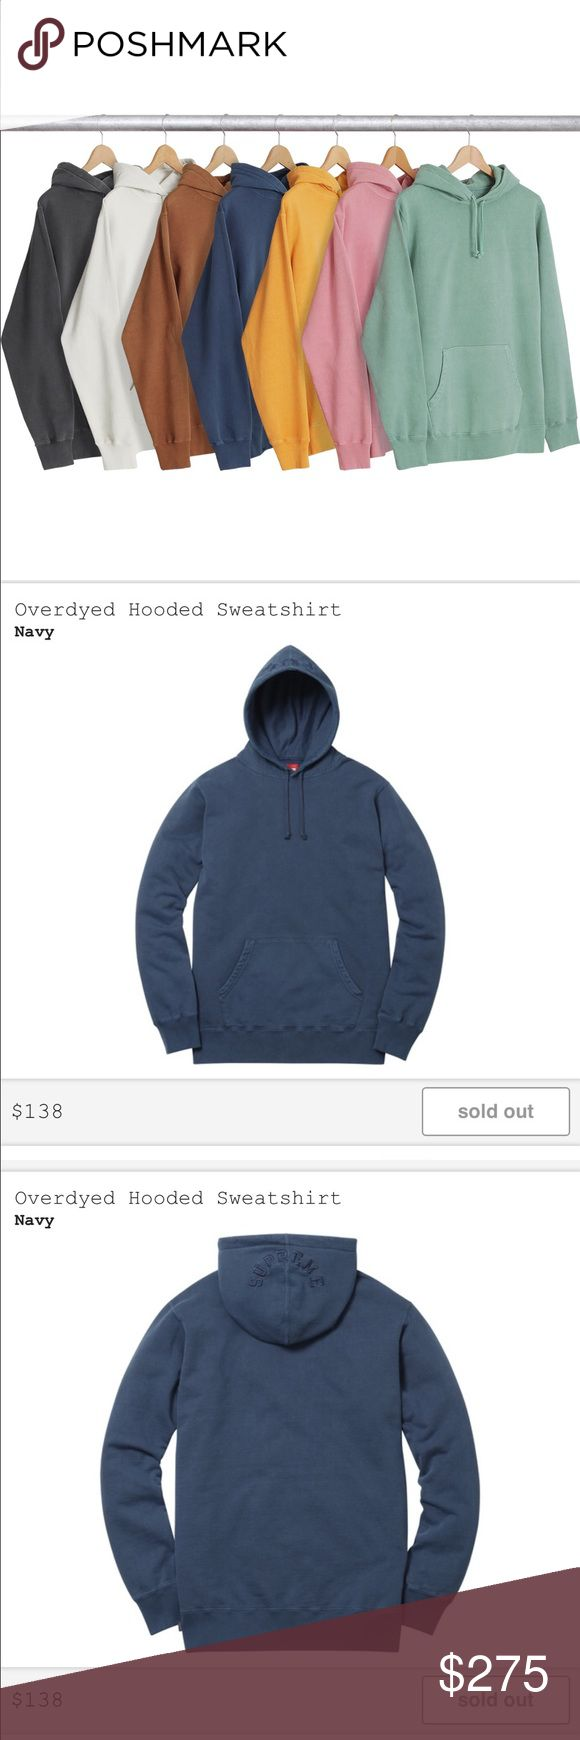 NWT Sold Out Supreme Overdyed Hooded Sweatshirt Supreme is a skateboarding shop/clothing brand established in New York City in April 1994. The brand caters to the skateboarding, hip hop and punk rock cultures, and the youth culture at large. Their shoes, clothing, and accessories create a big secondary market for supreme clothing, because items are produced to a very limited quantity and also because there are only ten stores worldwide. Sold out Sweatshirt Unisex/Men's size Medium. 100%…